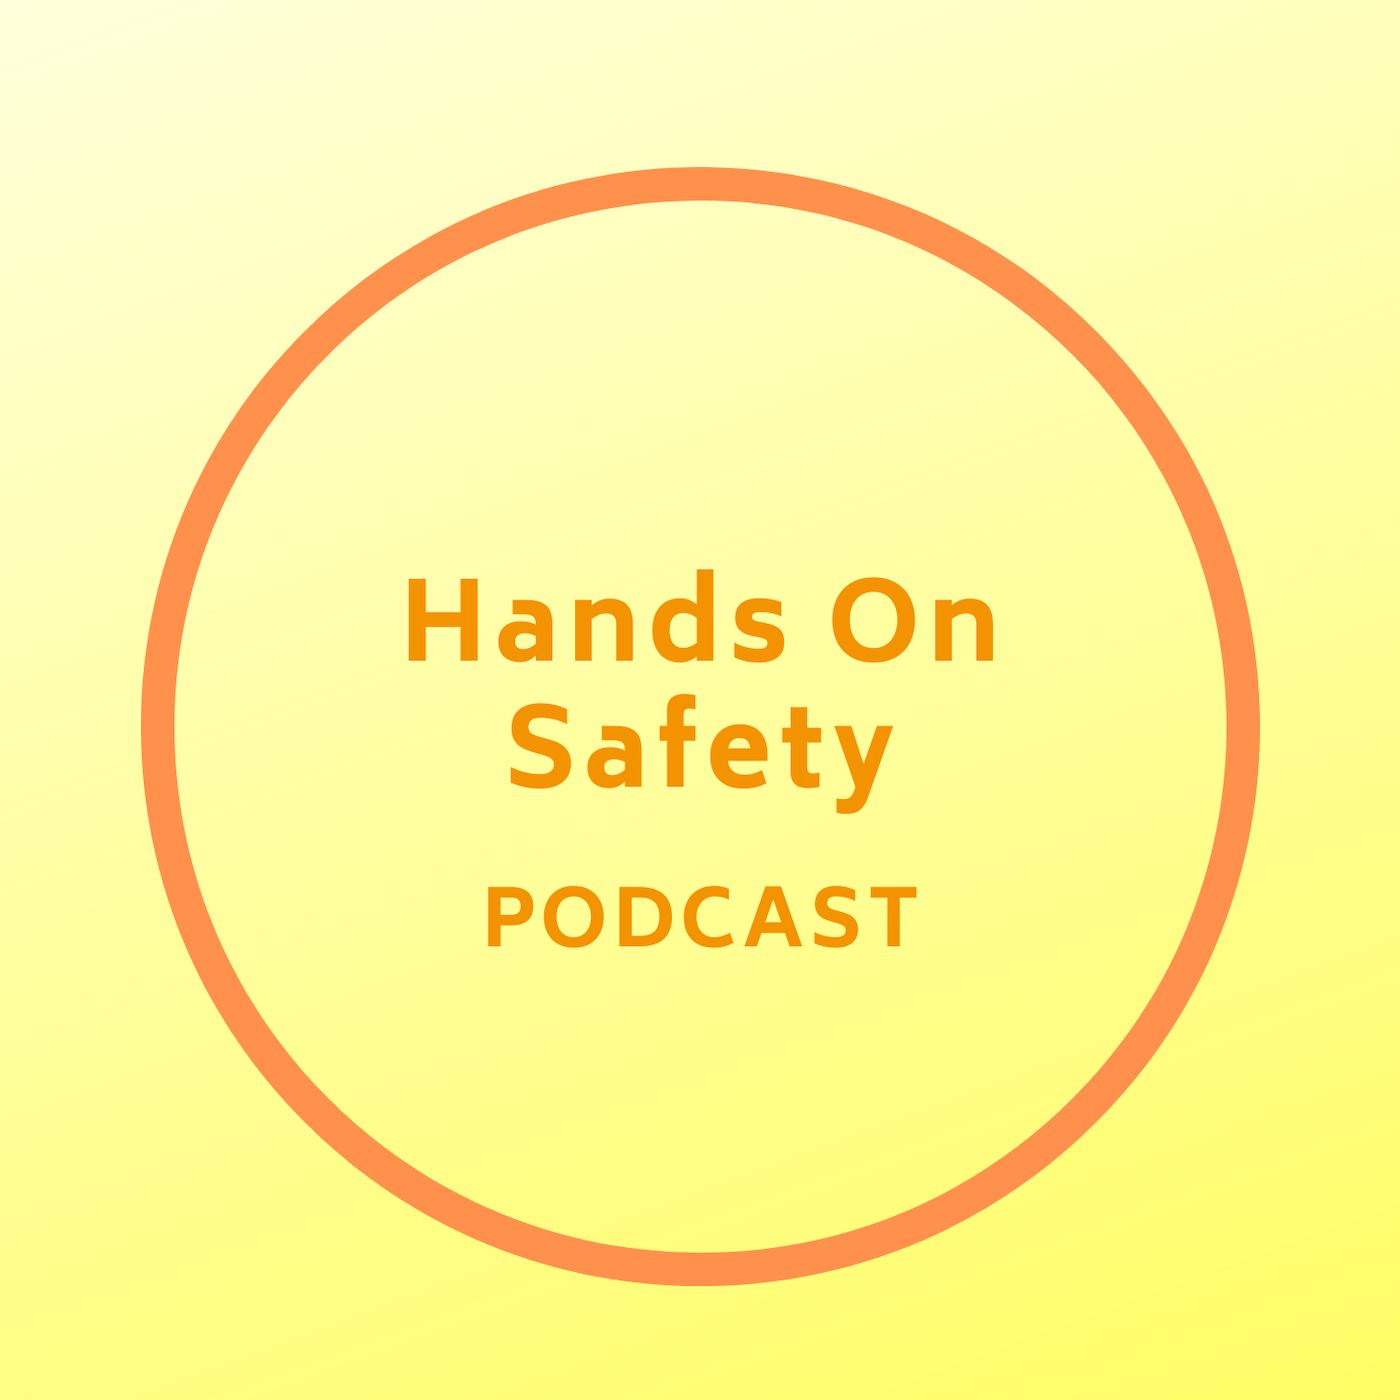 A podcast that discusses personal safety for those with disabilities